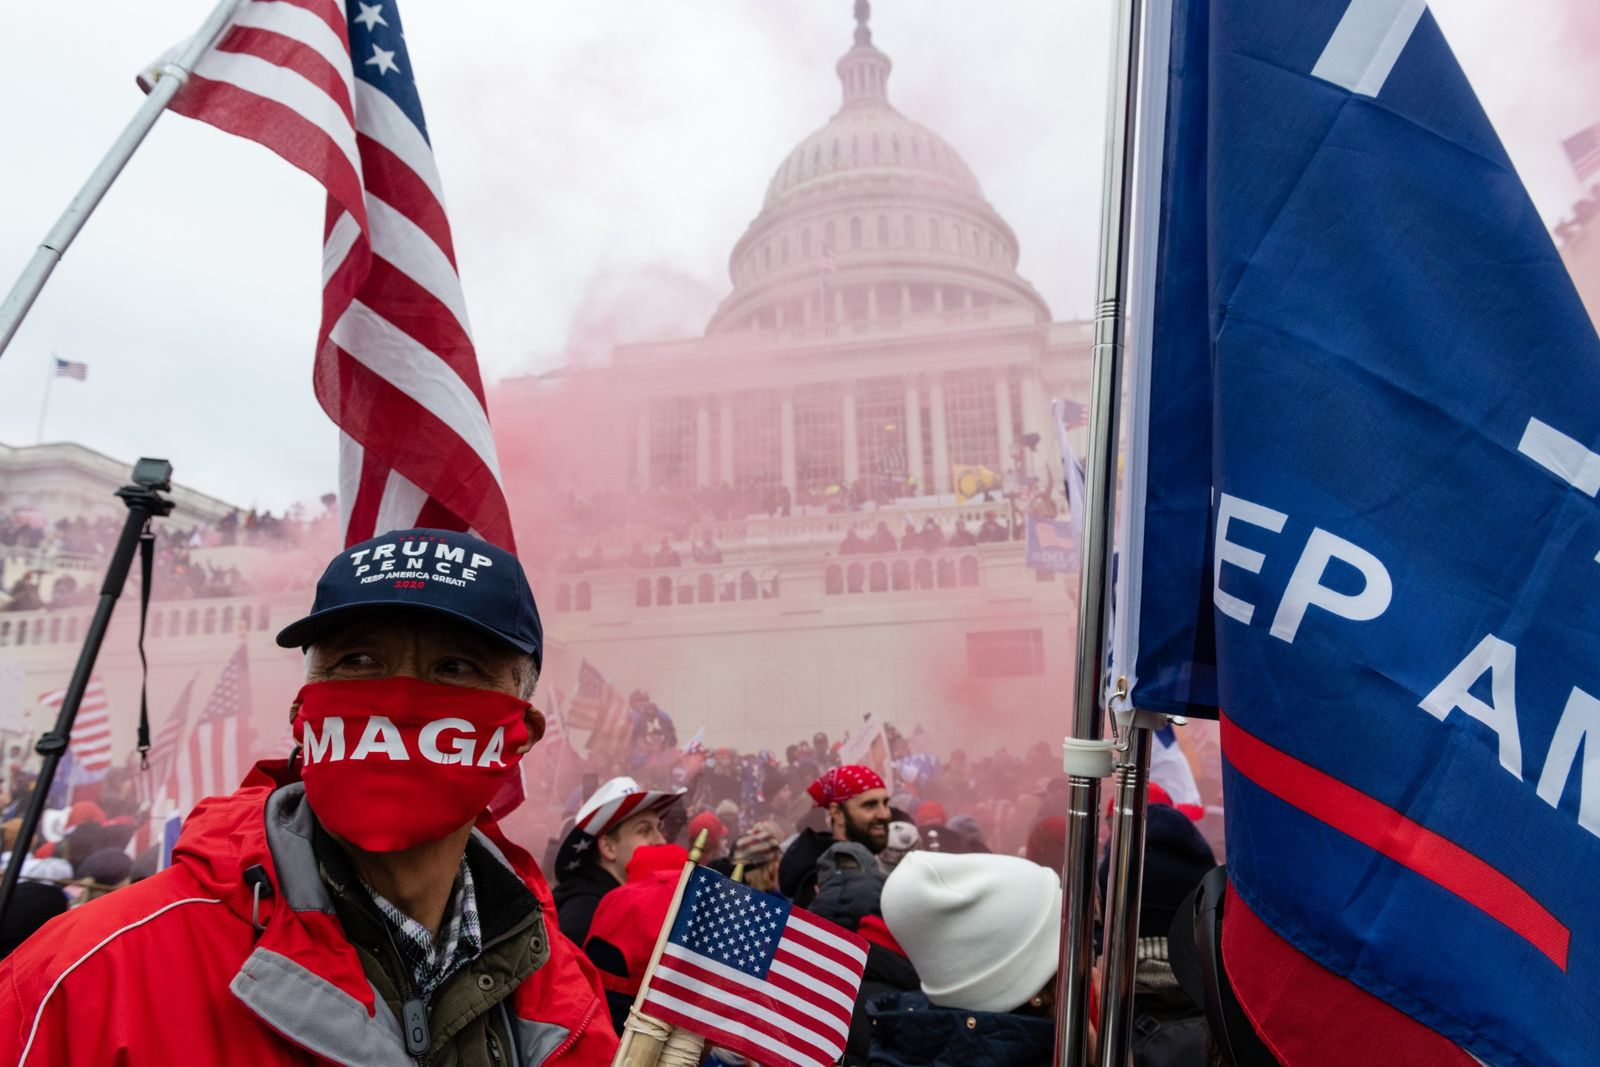 Smoke grenade goes off at insurrection led by supporters of President Trump, Washington, D.C., January 6, 2021. Photo by Eric Lee/Bloomberg.